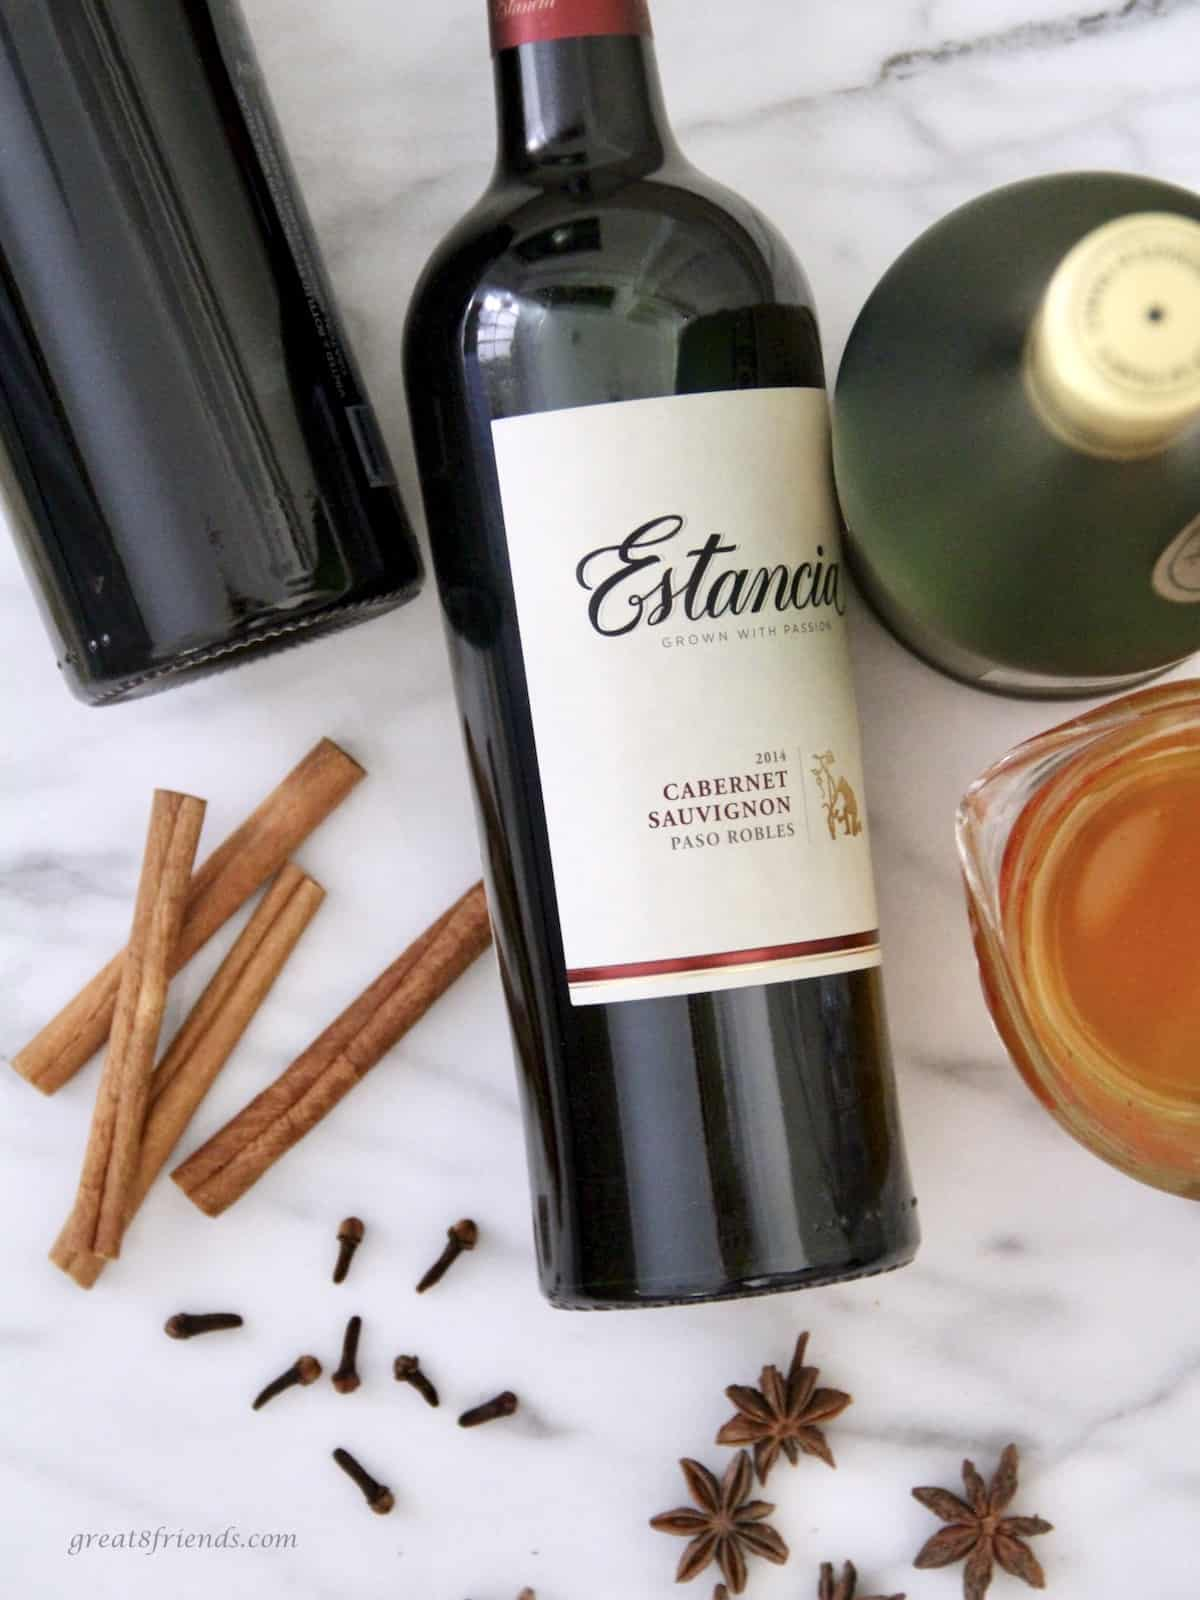 Two bottles of red wine, bottle of brandy, cup of honey, cinnamon sticks, whole cloves and anise stars all on a marble table.